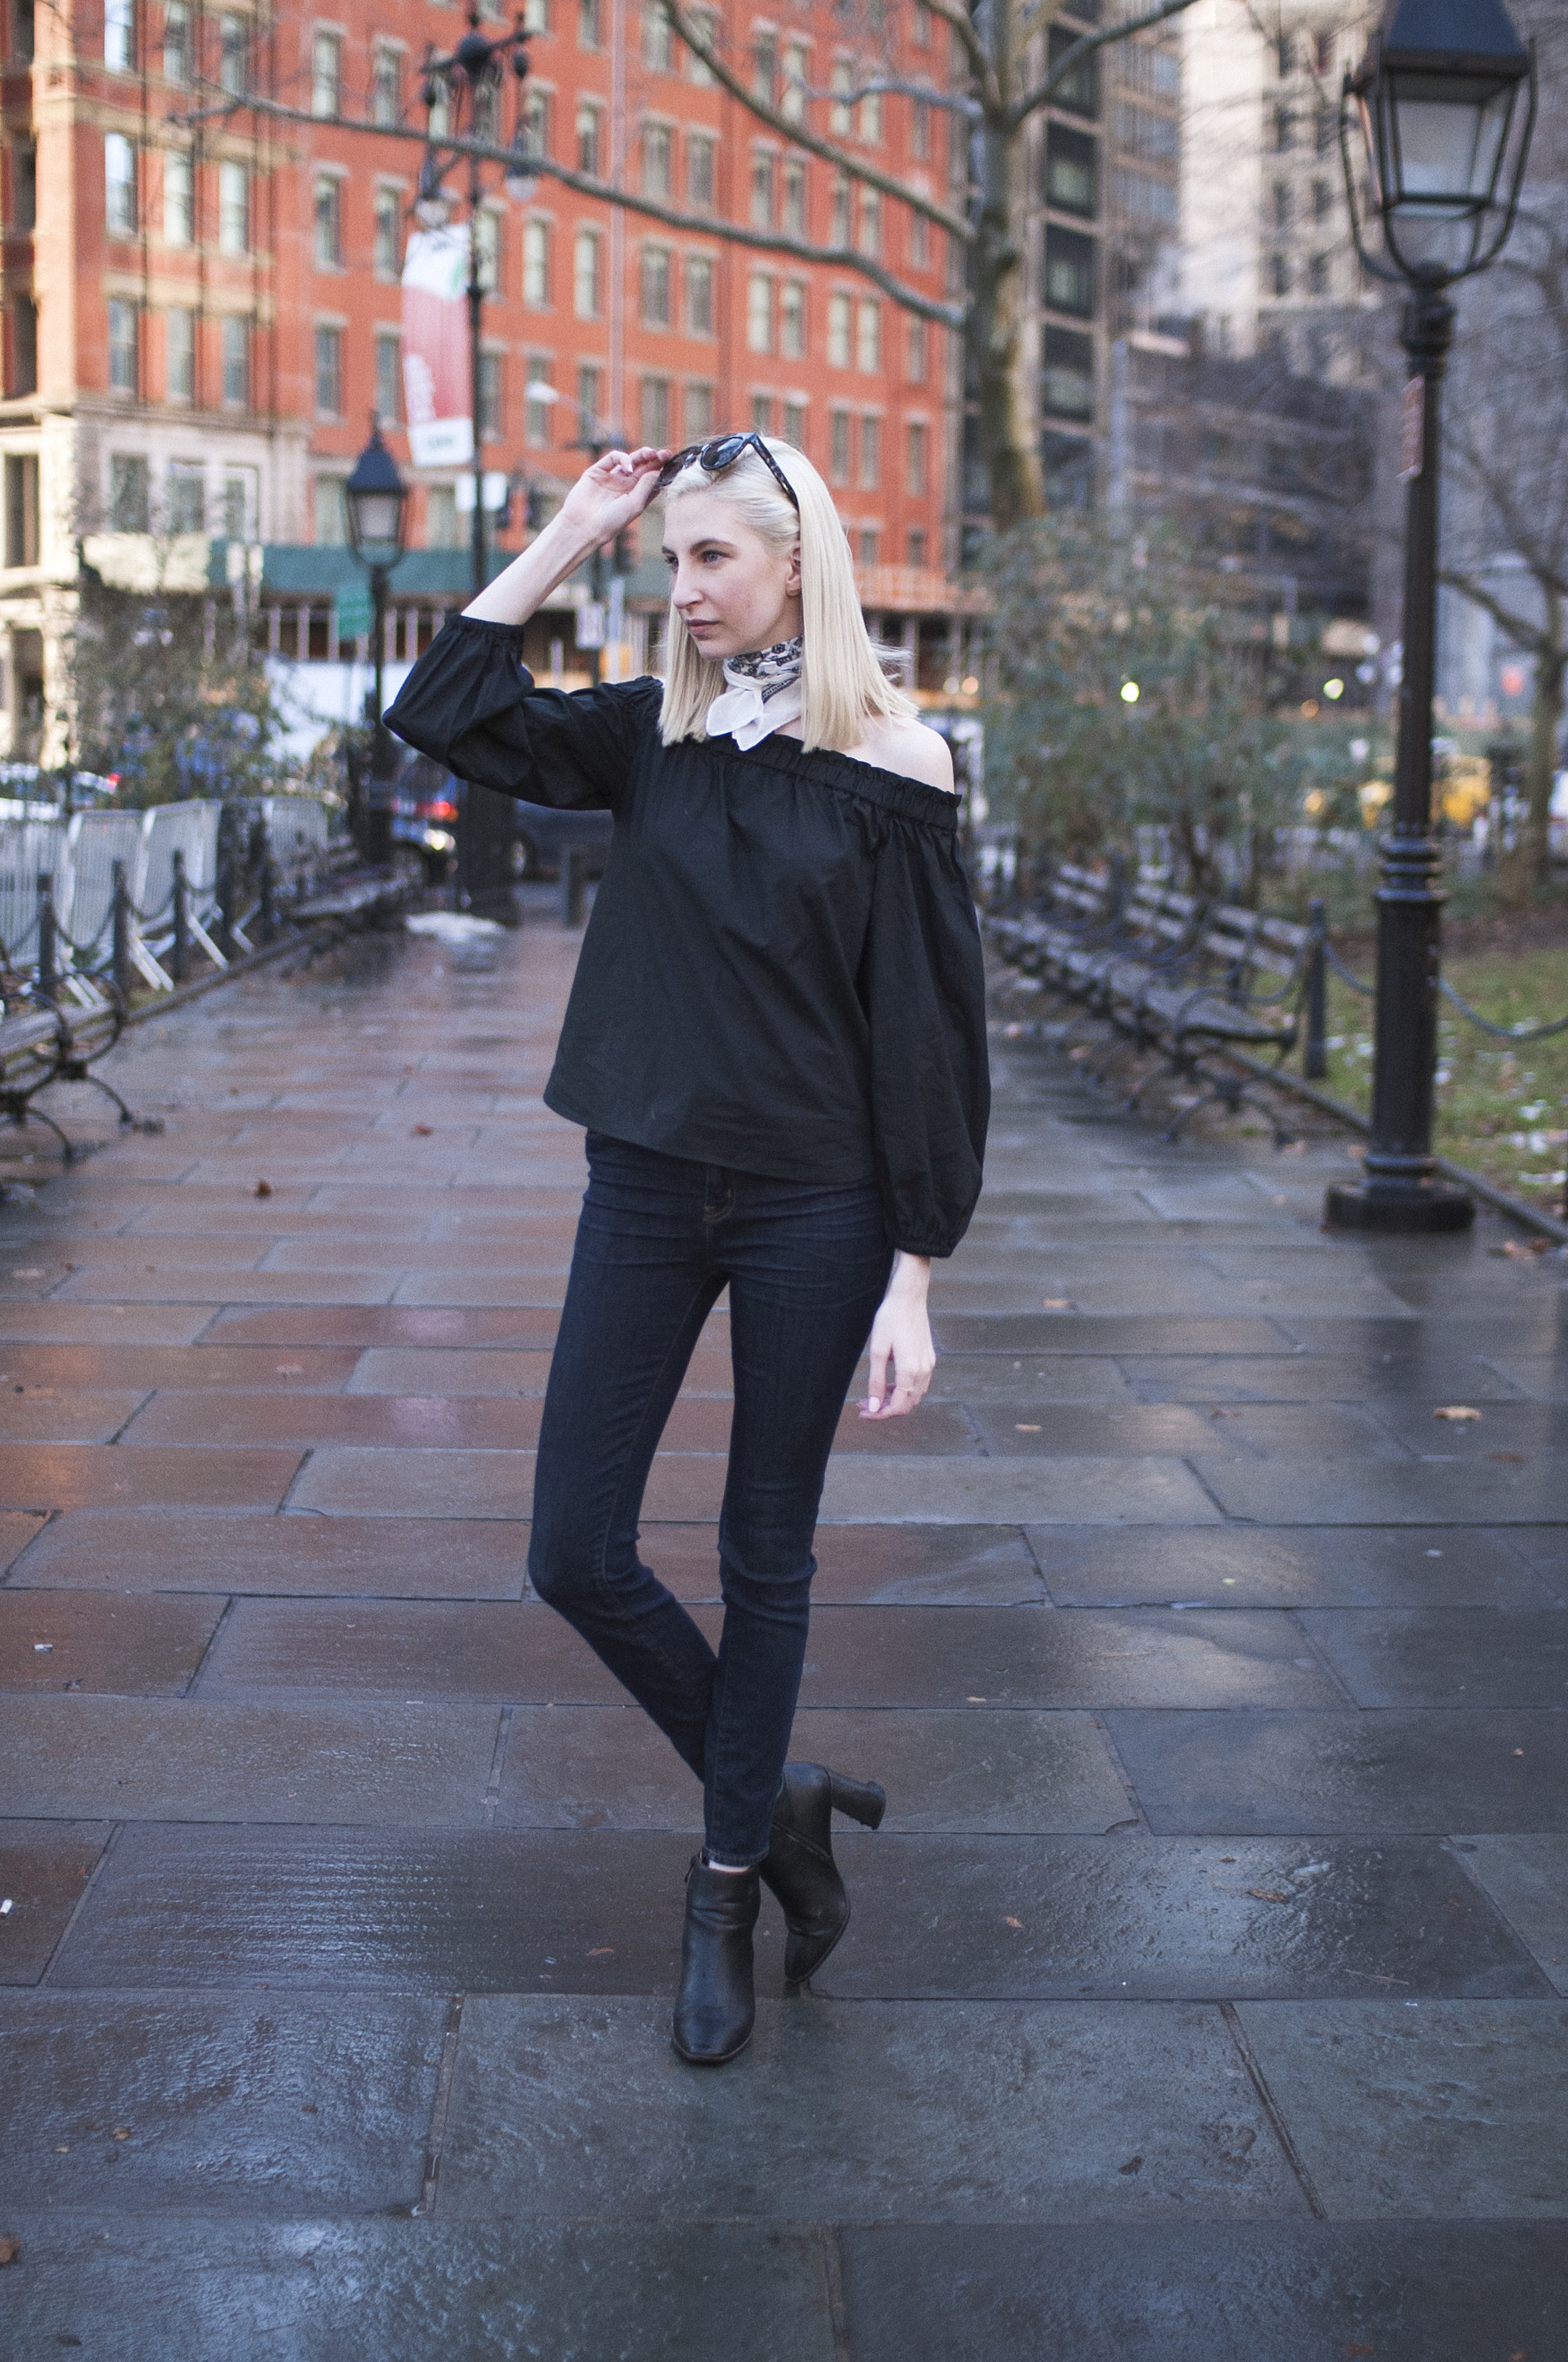 Audra Koch J.Crew black longsleeve off the shoulder top, lookout high rise jeans, black block heel ankle boots, white bandana neck scarf, ear crawlers from Rocksbox